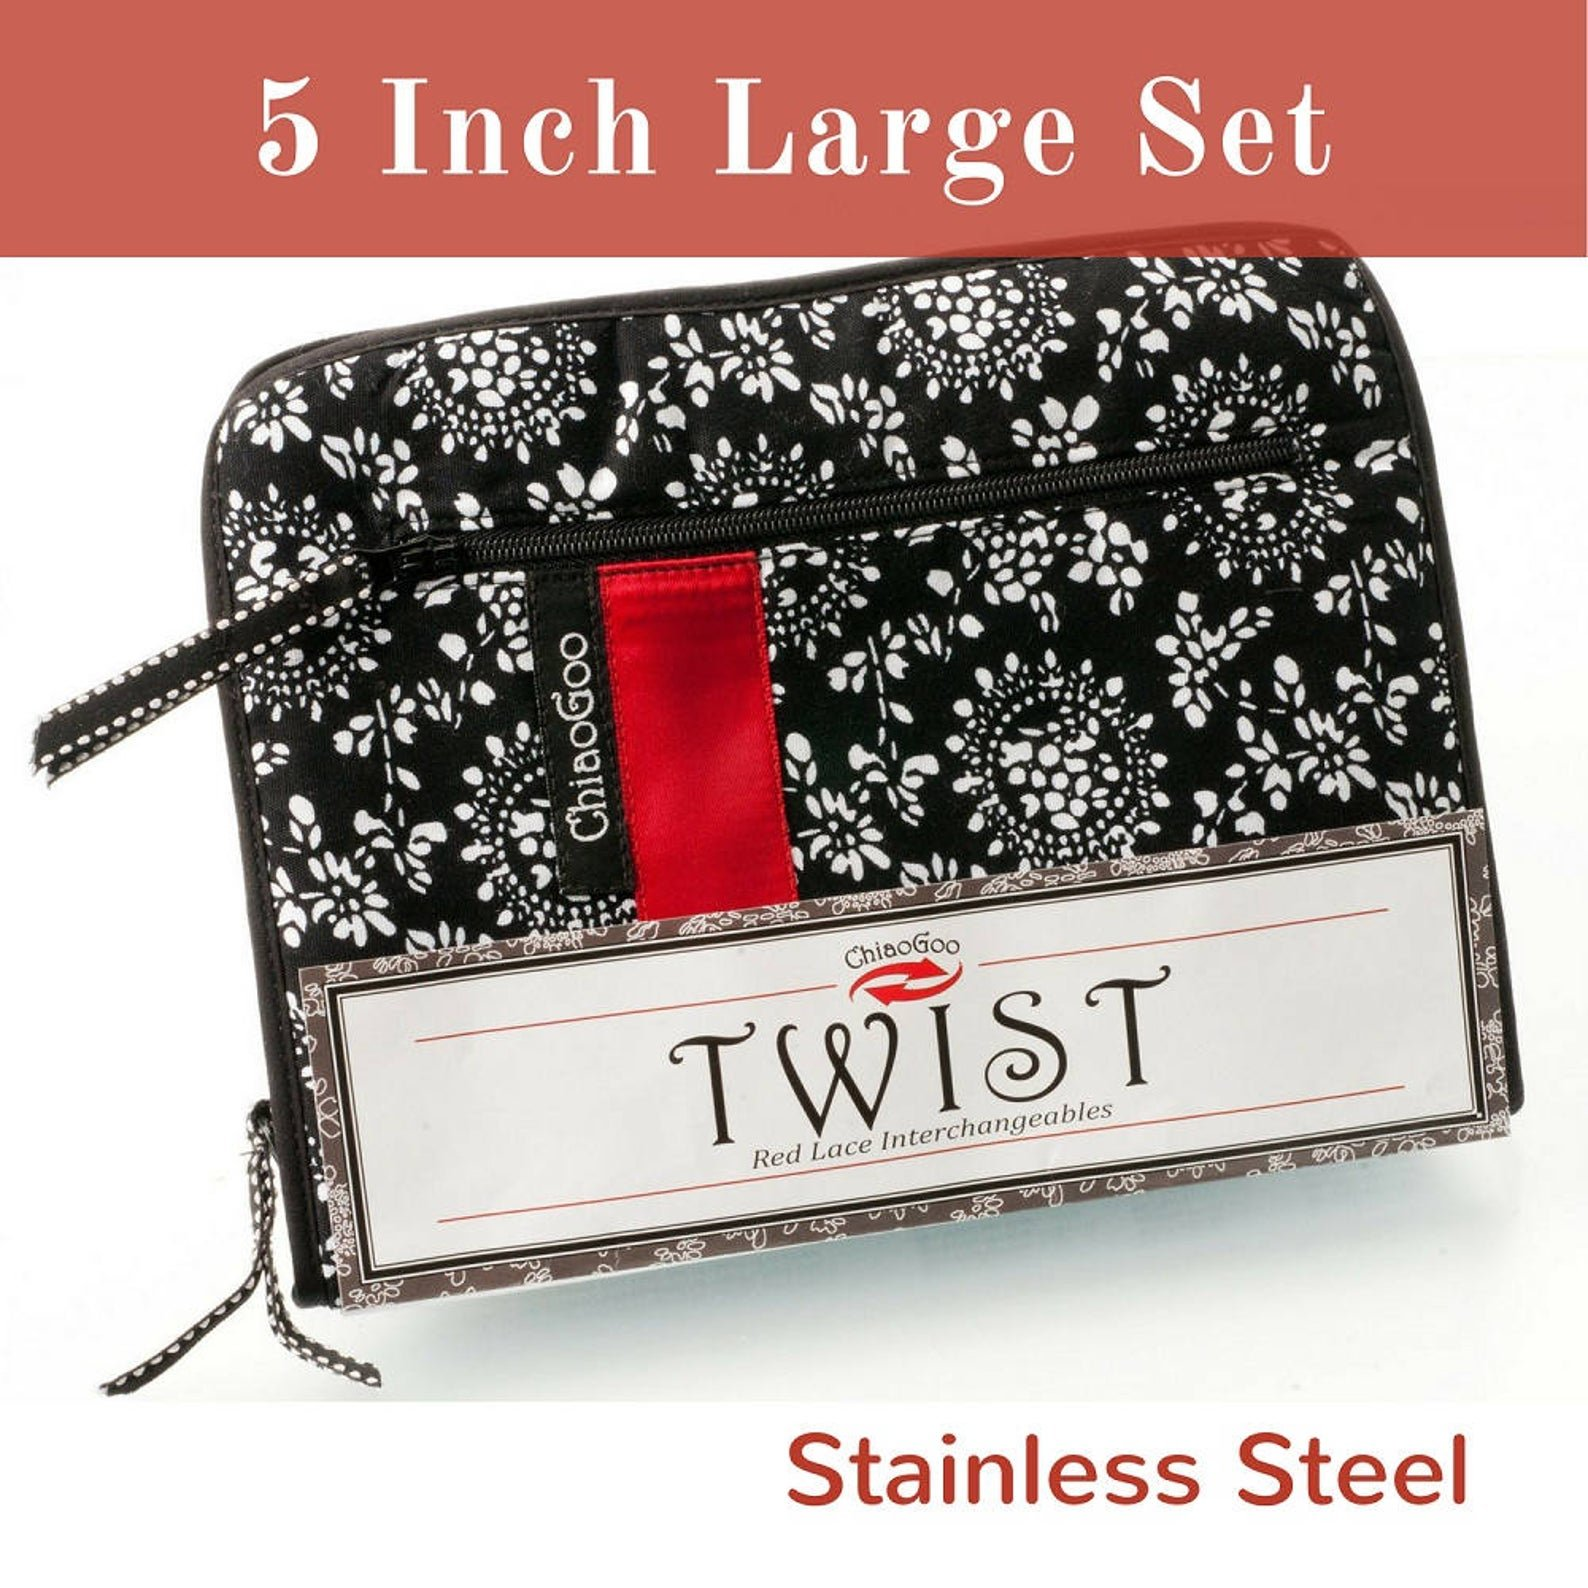 TWIST 5 in. Interchangeable Needle Set Red Lace Large US 9-15 (5.50mm-10.00mm)